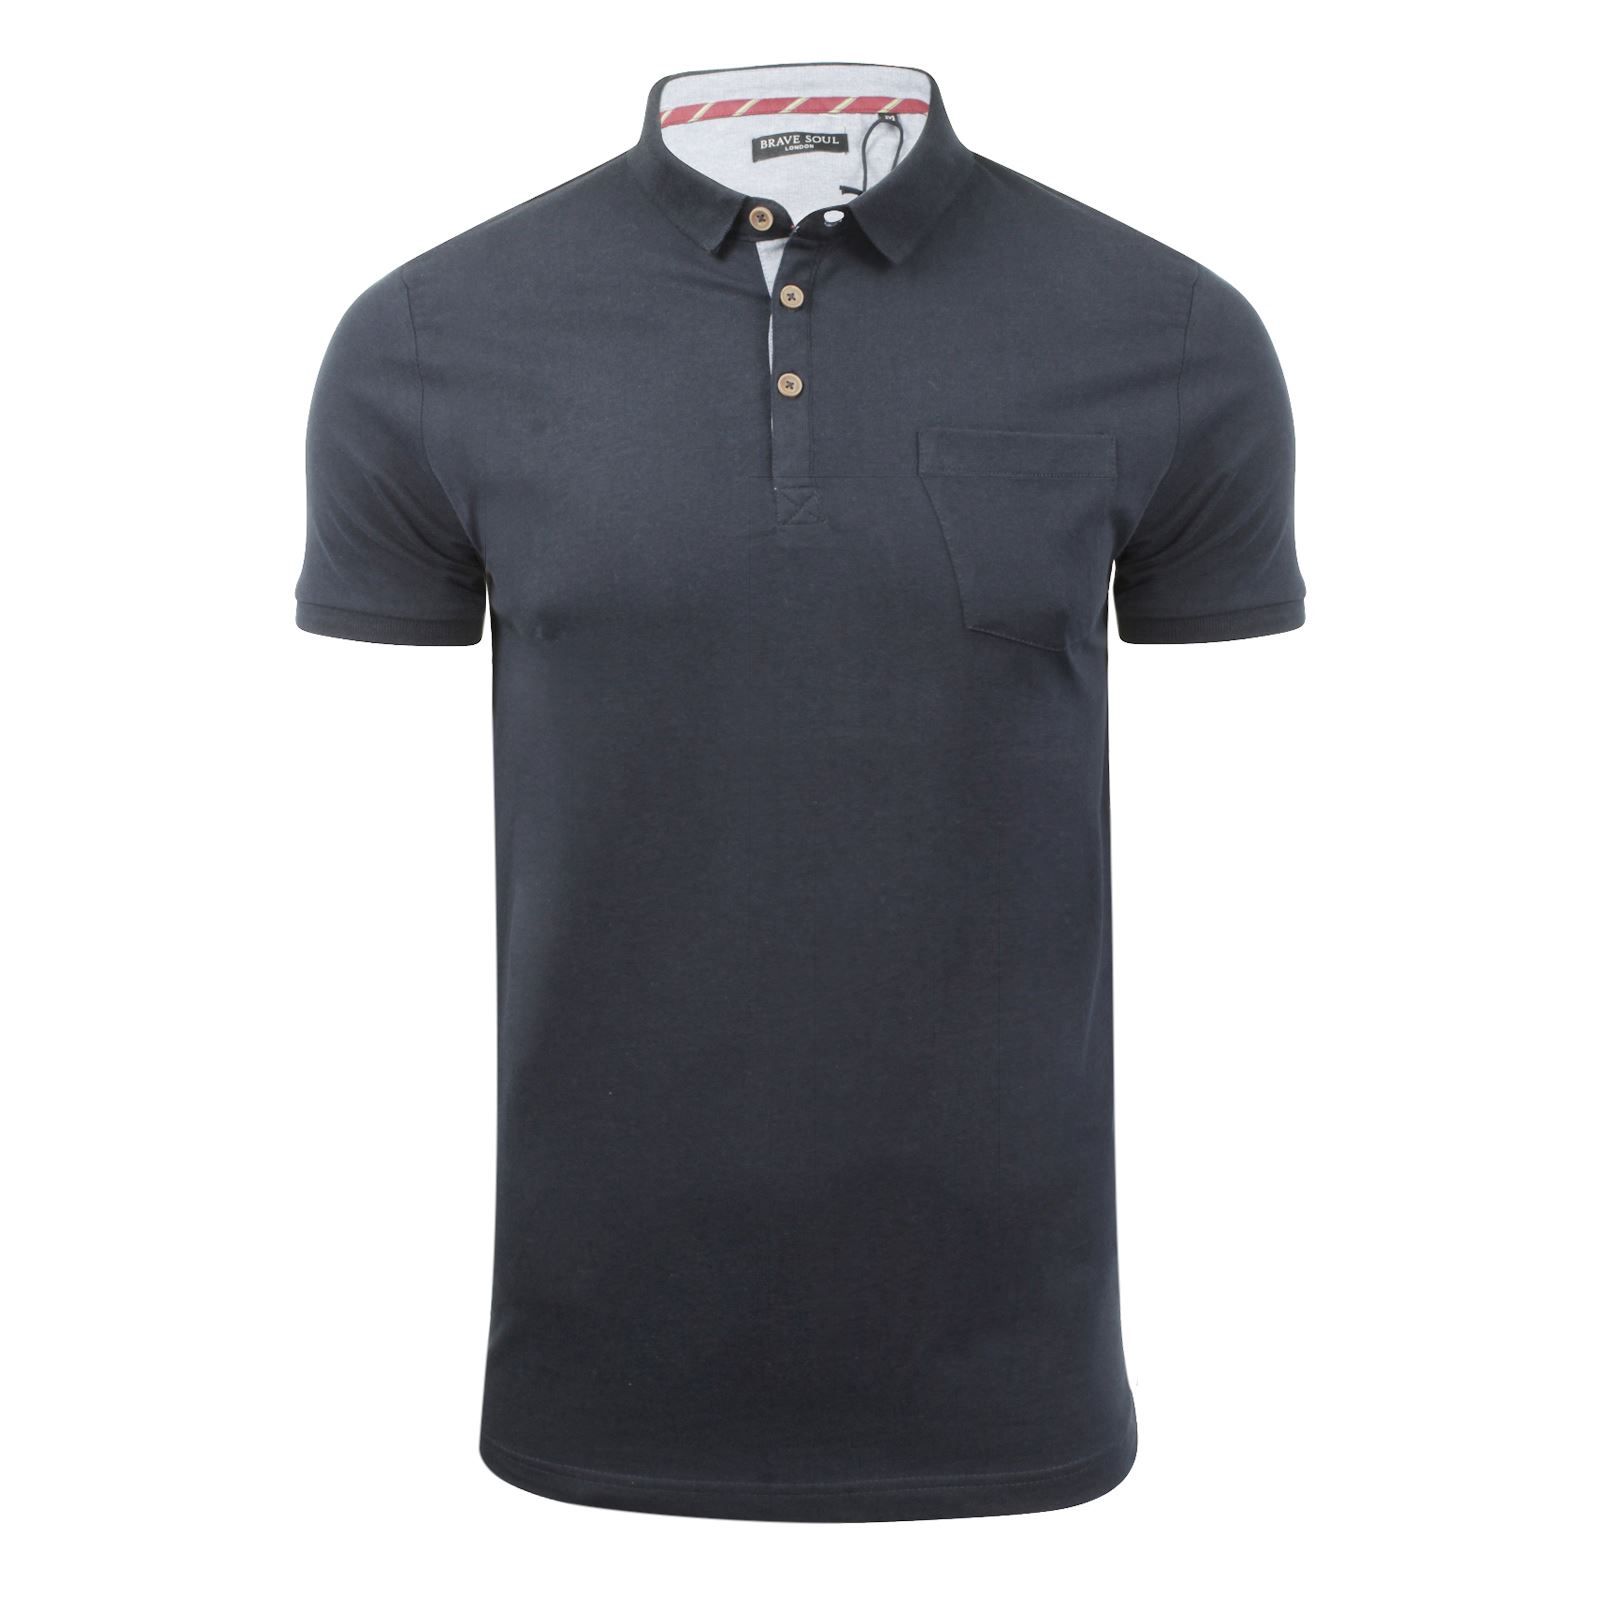 Mens-Polo-T-Shirt-Brave-Soul-Julius-Cotton-Collared-Short-Sleeve-Casual-Top thumbnail 34